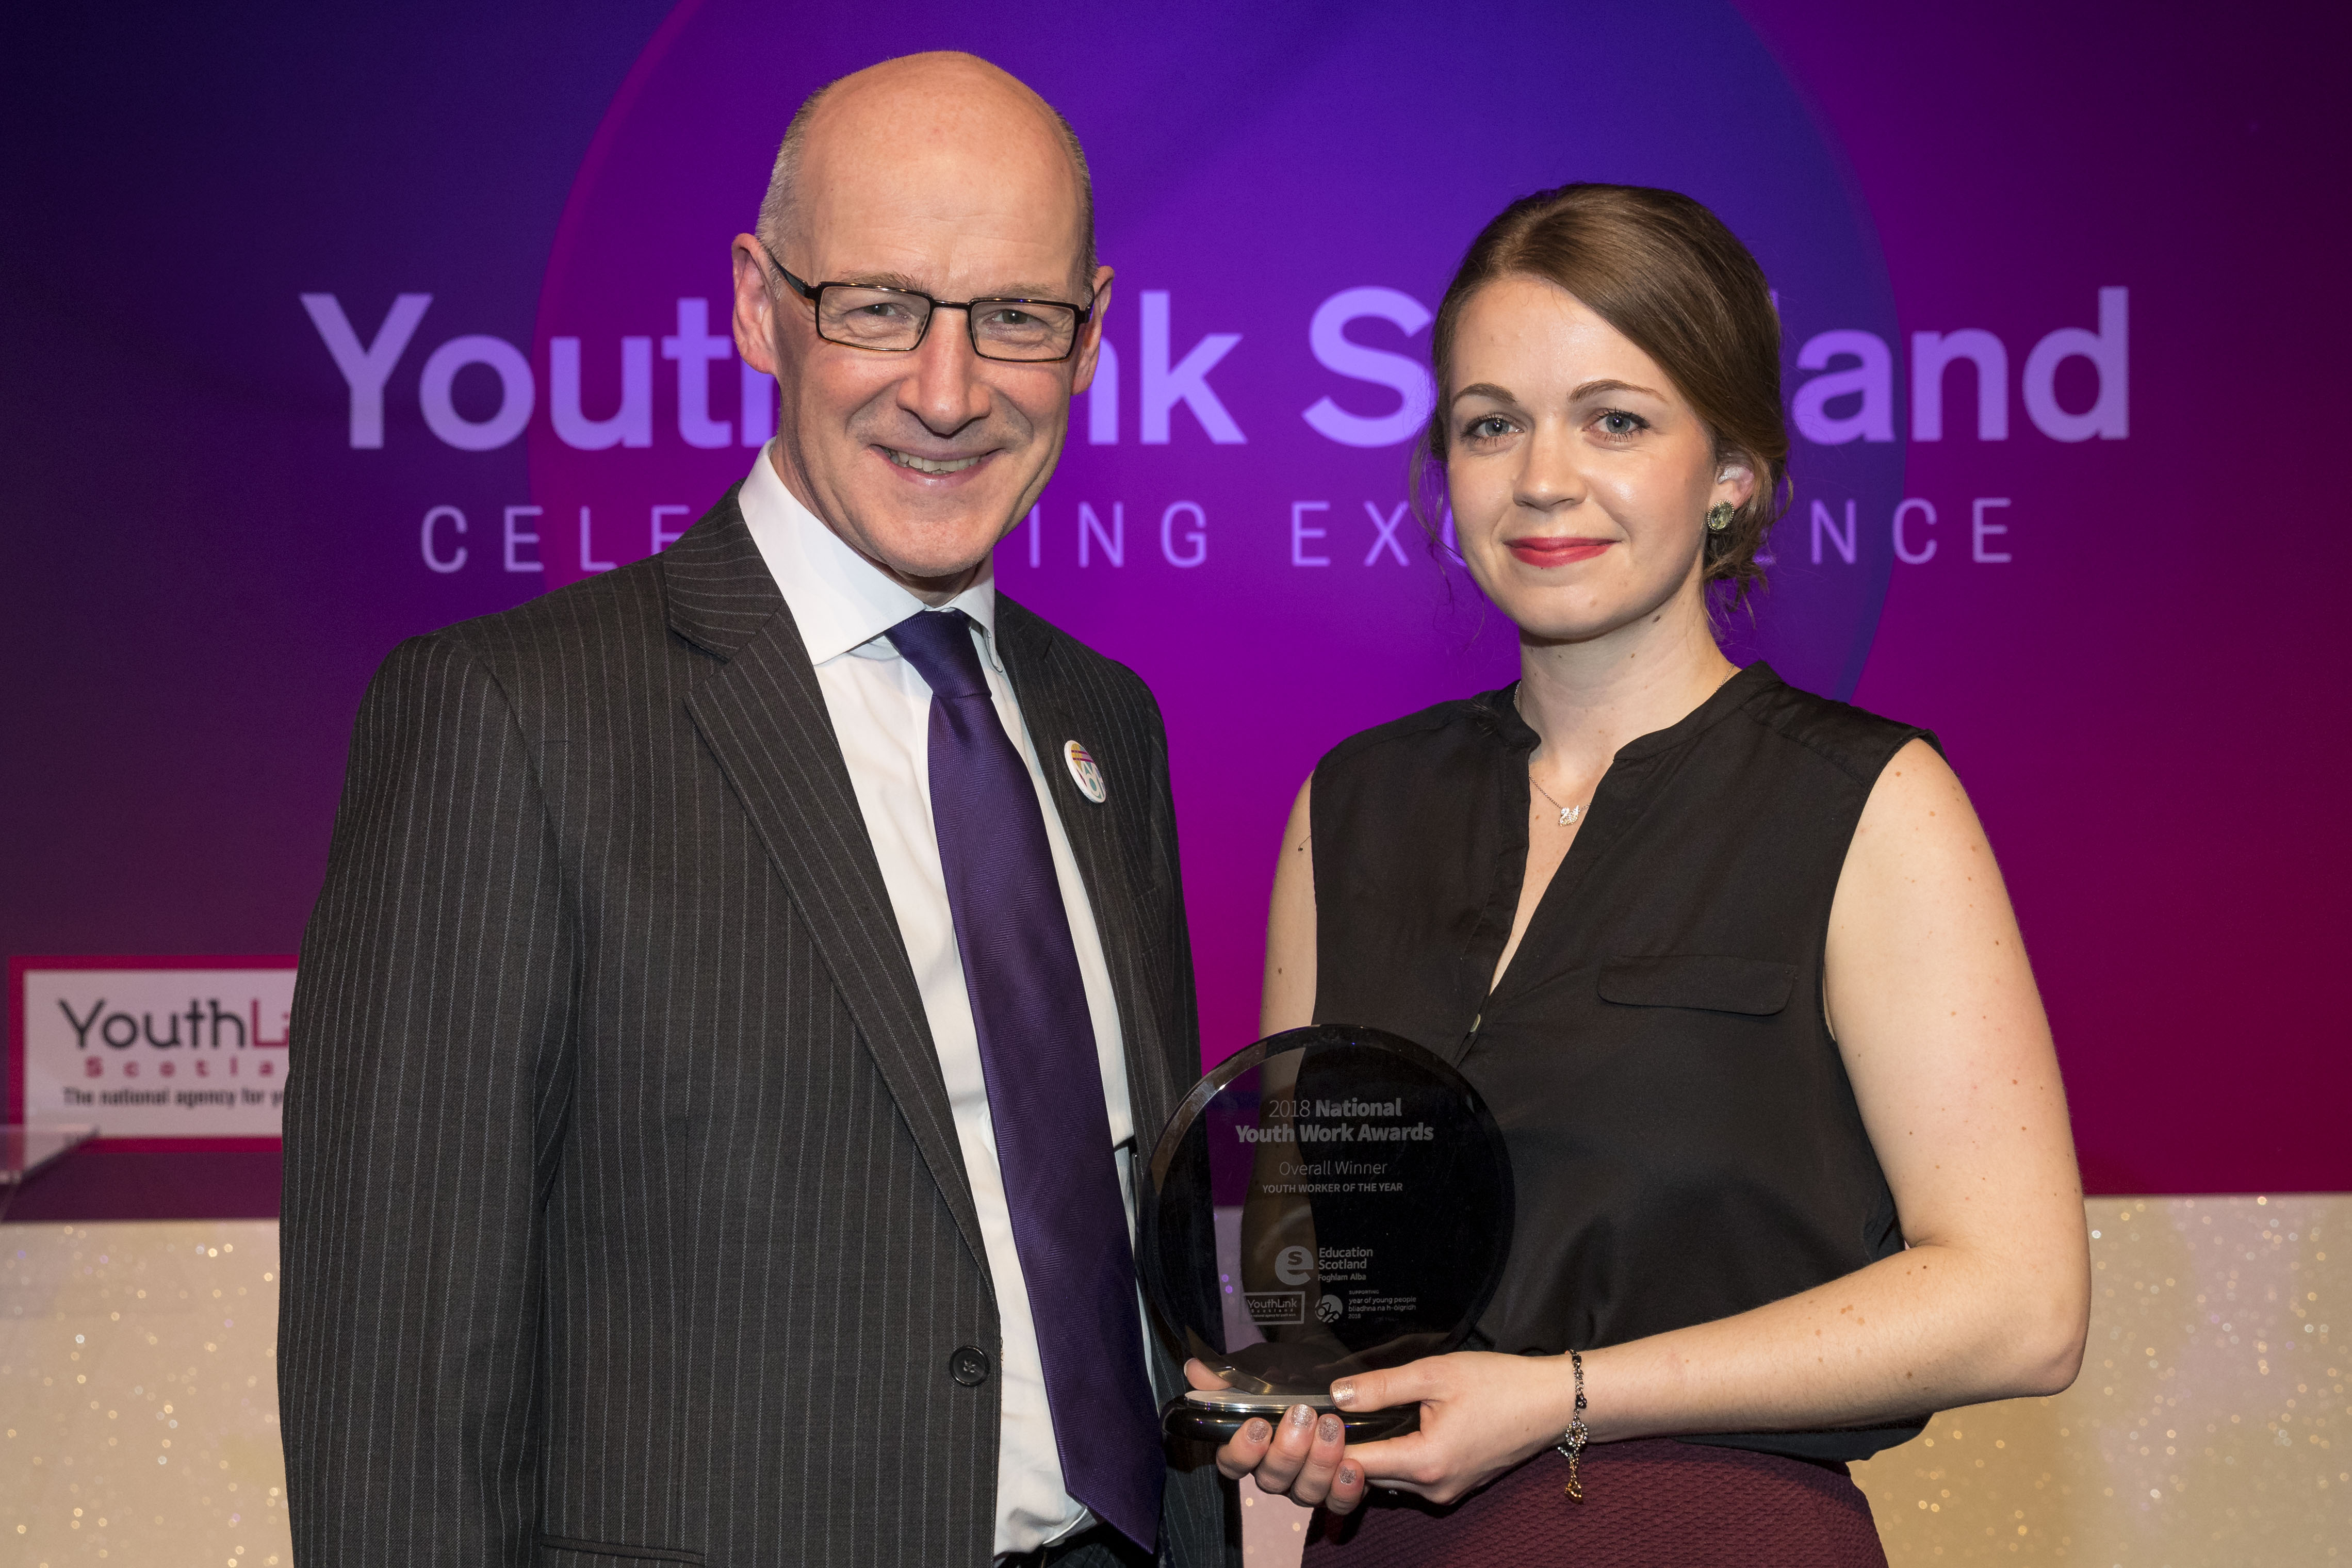 Deputy First Minister John Swinney and Matilda Lomas who has been named Scotland's Youth Worker of the Year 2018 (Alan Rennie/YouthLink Scotland/PA)